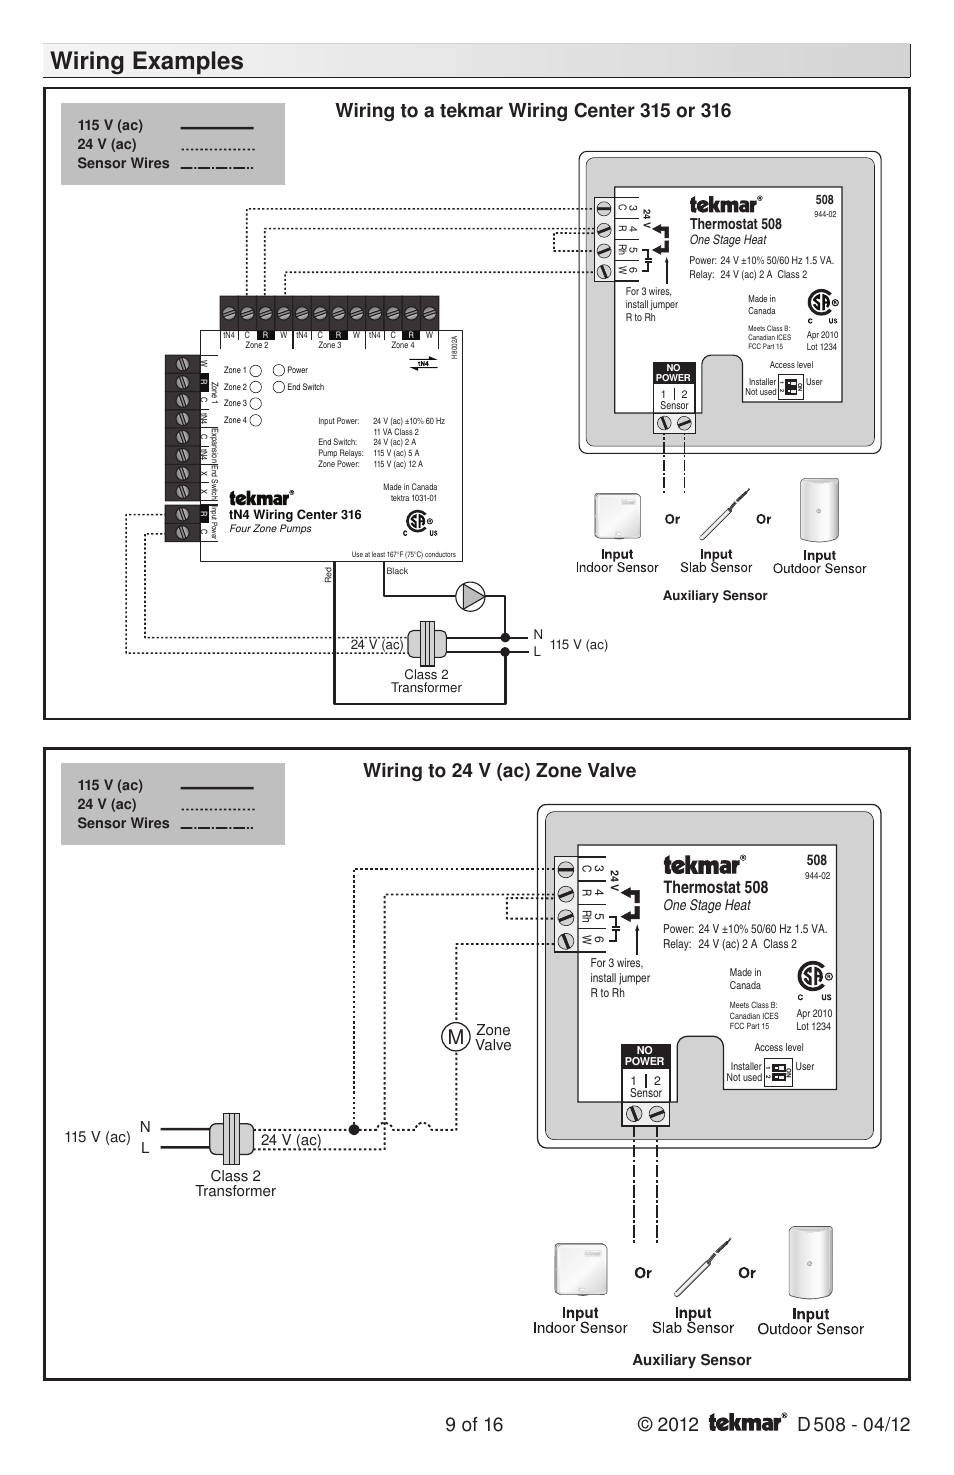 medium resolution of wiring examples thermostat 508 zone valve tekmar 509 thermostat installation user manual page 9 16